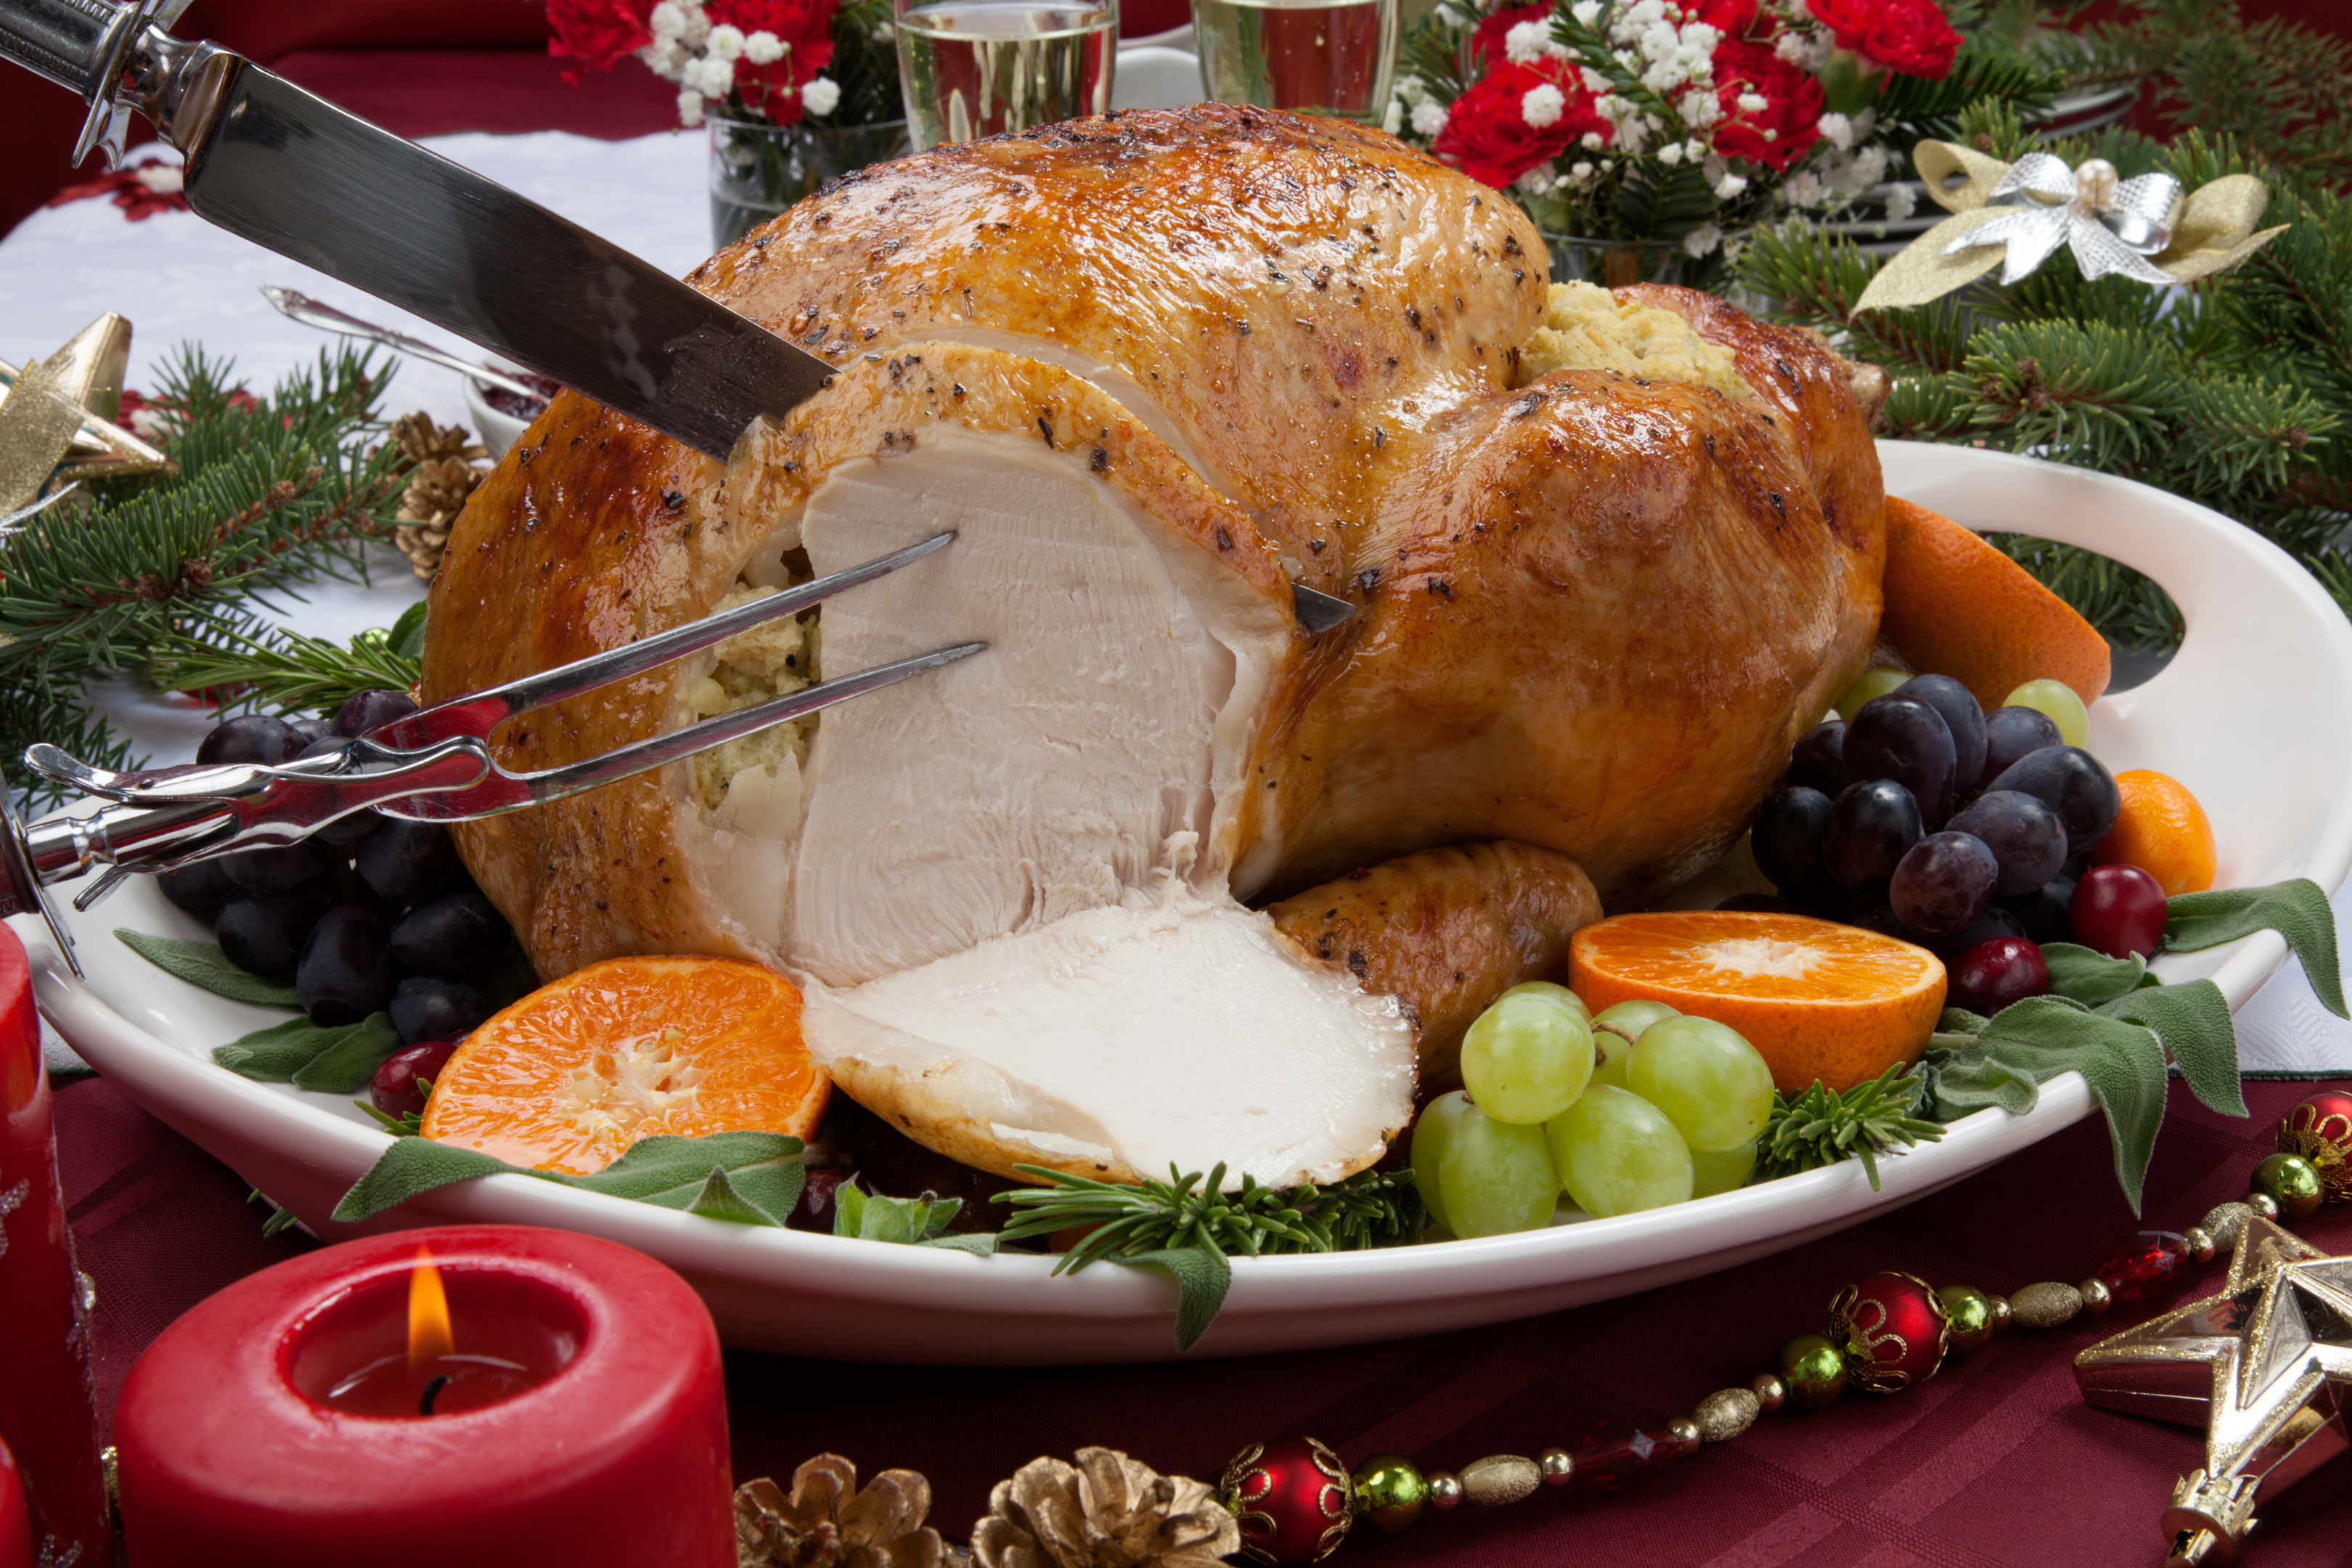 The turkey feast at Bob Cratchit's house in A Christmas Carol features on Stuart MacBride's list (iStock)